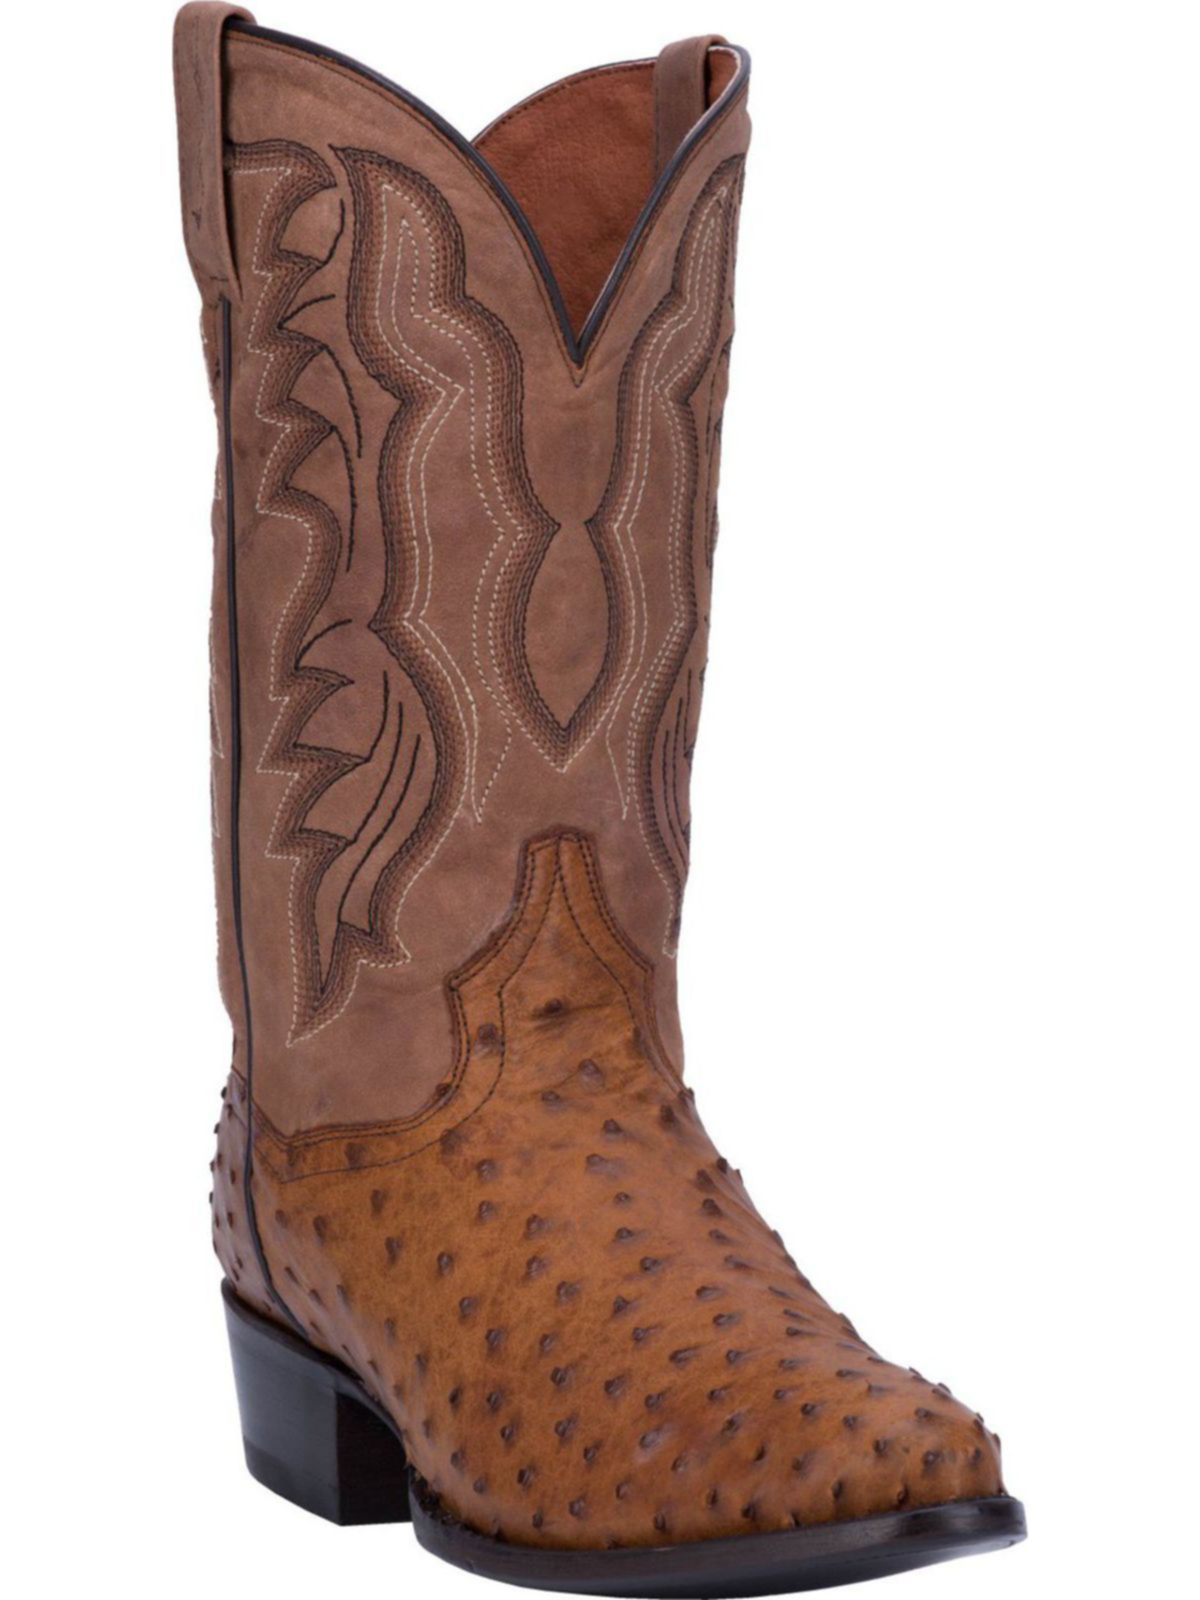 Bootamerica Dan Post Mens Tempe Full Quill Ostrich Dp2323